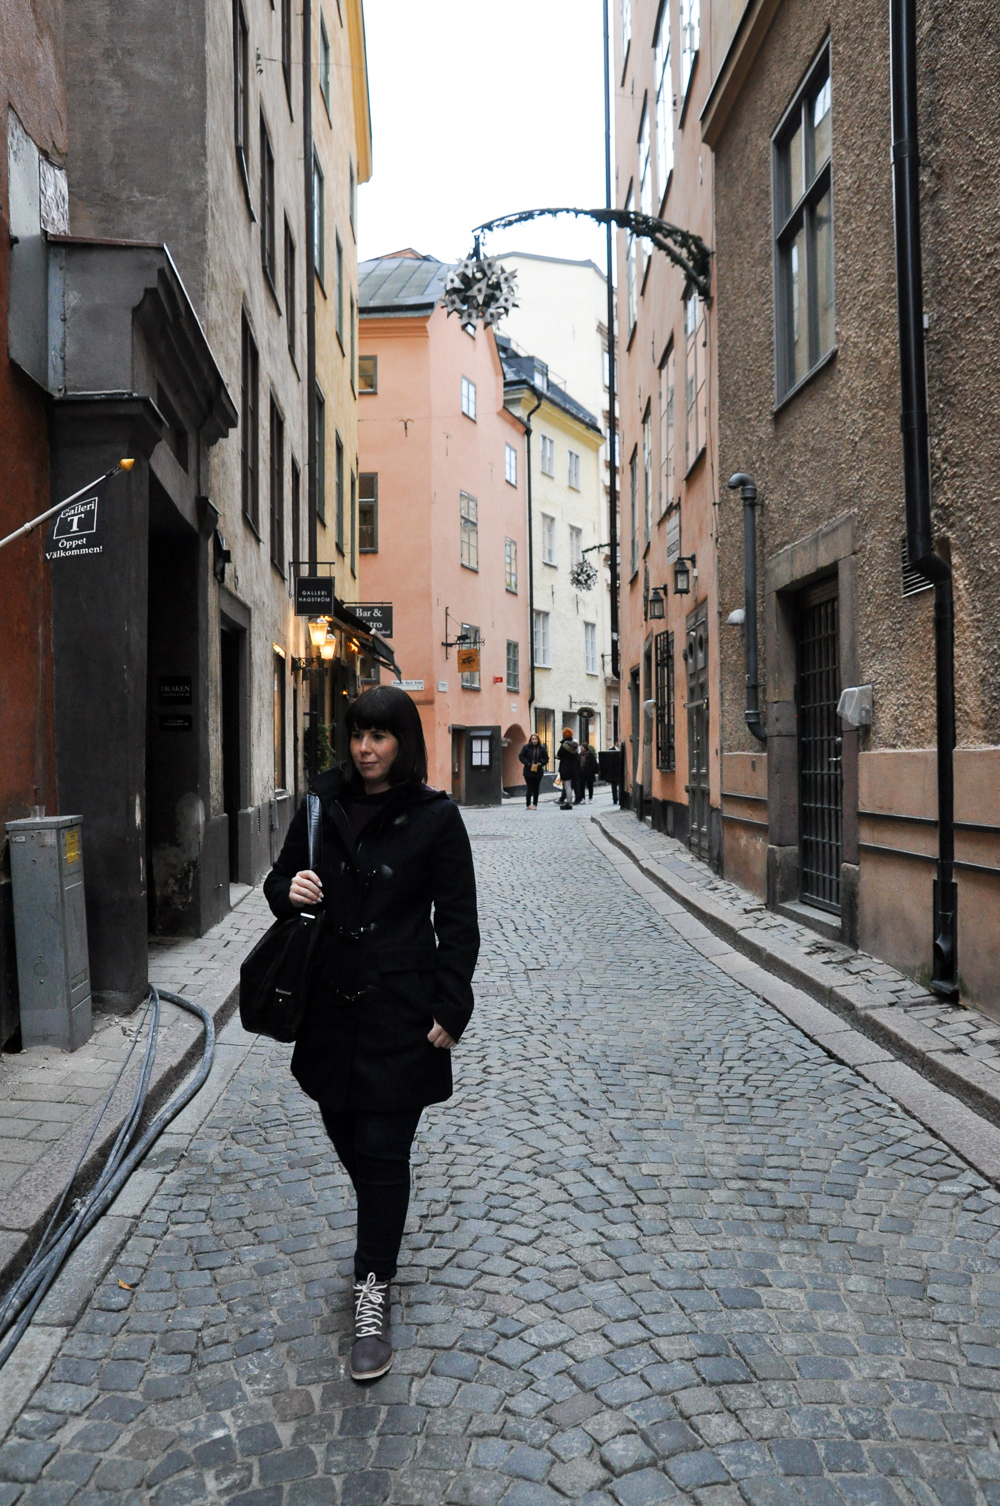 Walking the streets of Gamla Stan, Stockholm's old town.